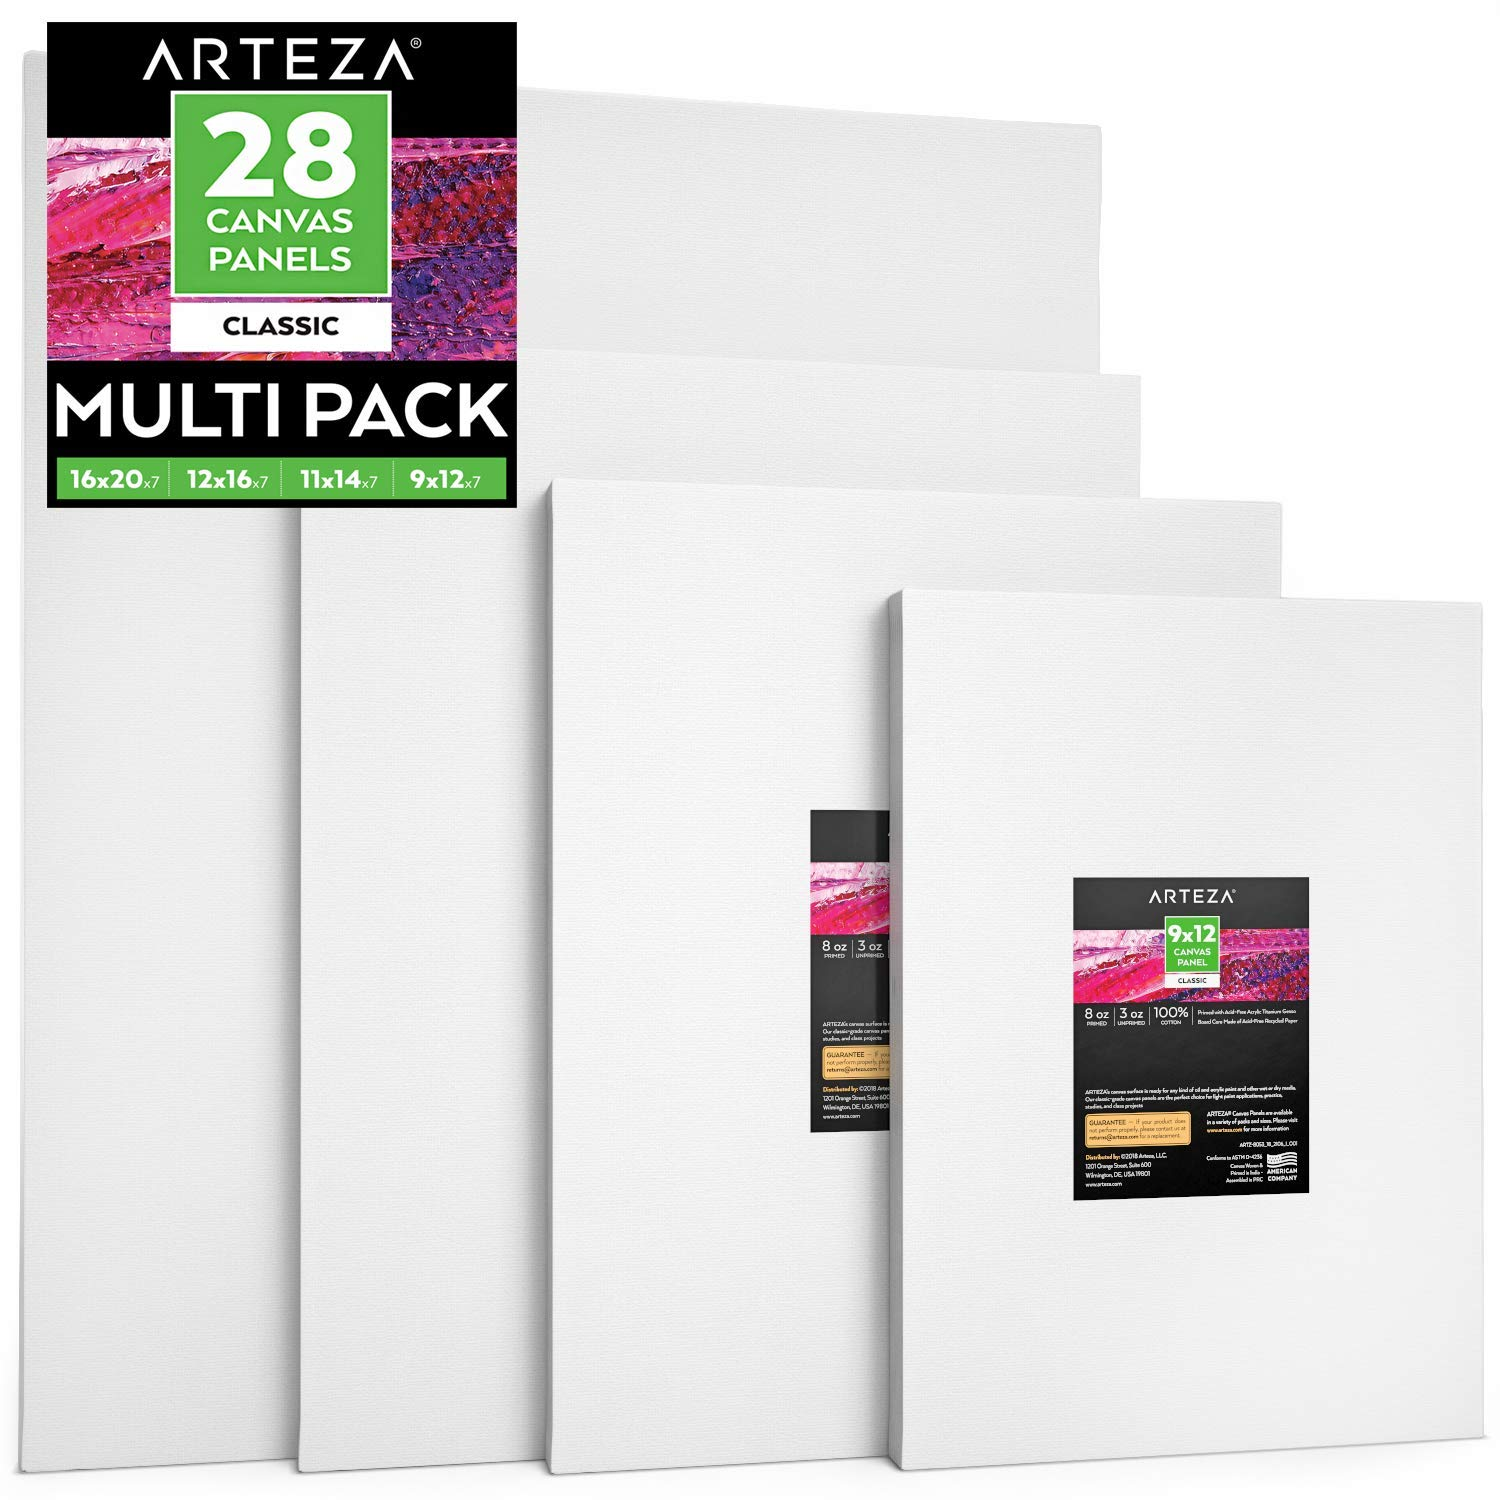 Arteza Painting Canvas Panels Multi Pack, 9x12'', 11x14'', 12x16'', 16x20'' Set of 28, Primed White, 100% Cotton with Recycled Board Core, for Acrylic, Oil, Other Wet or Dry Art Media, for Artists